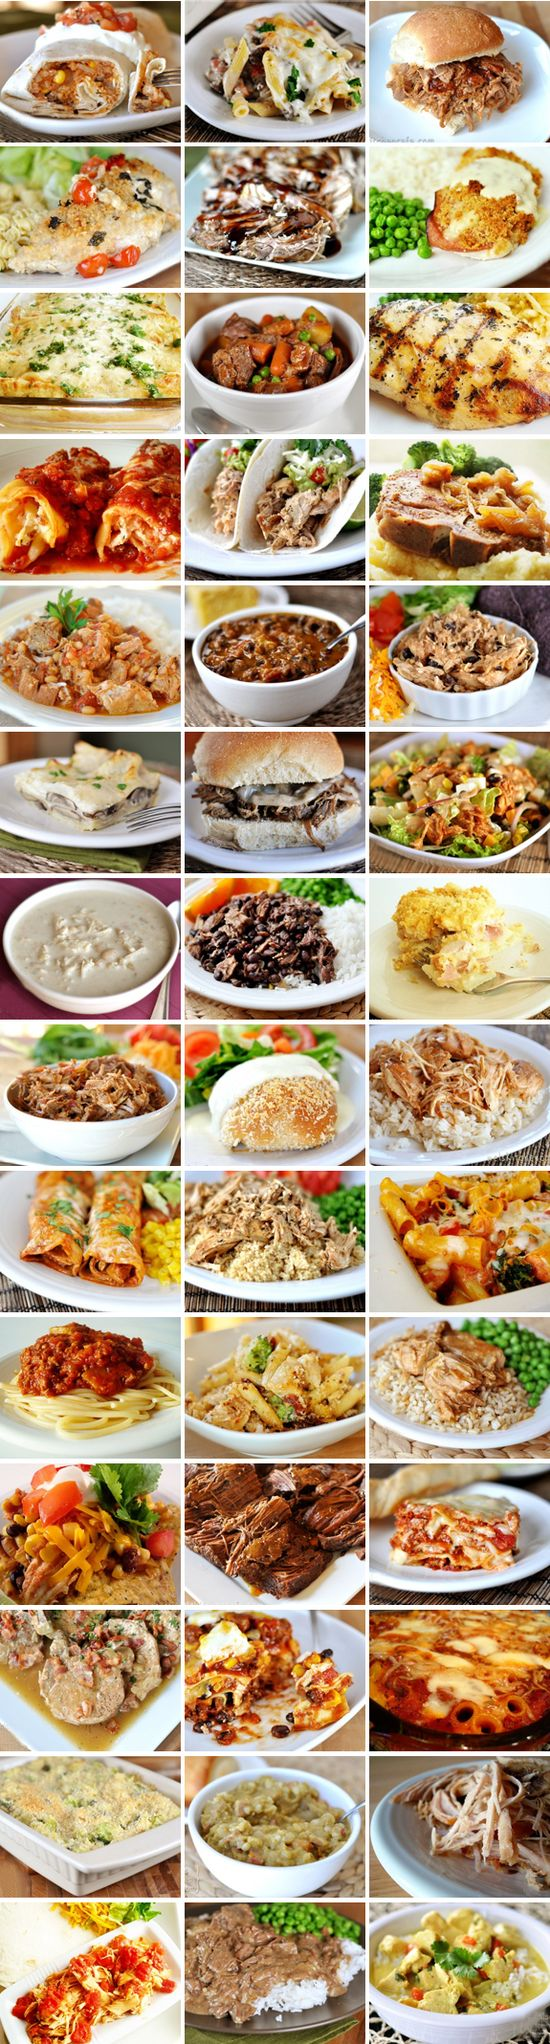 40+ Make Ahead Casseroles, Sammies, Soup & Crockpot  Meals!